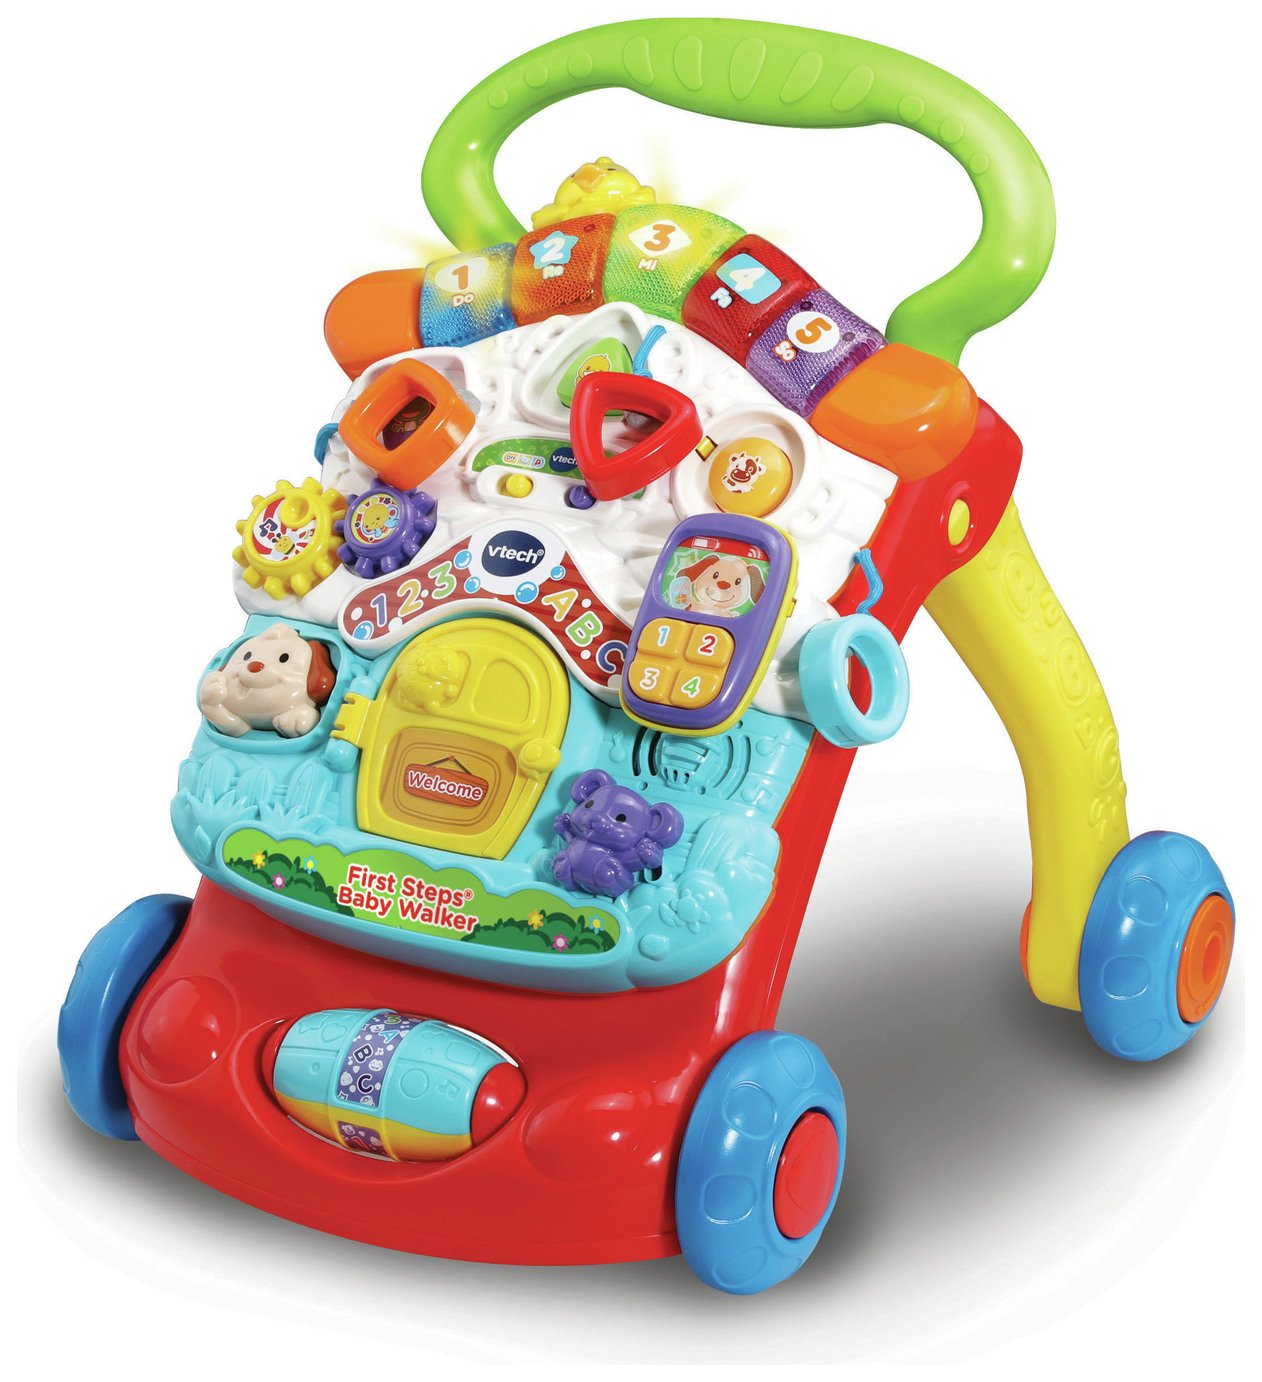 VTech First Steps Baby Walker from VTech